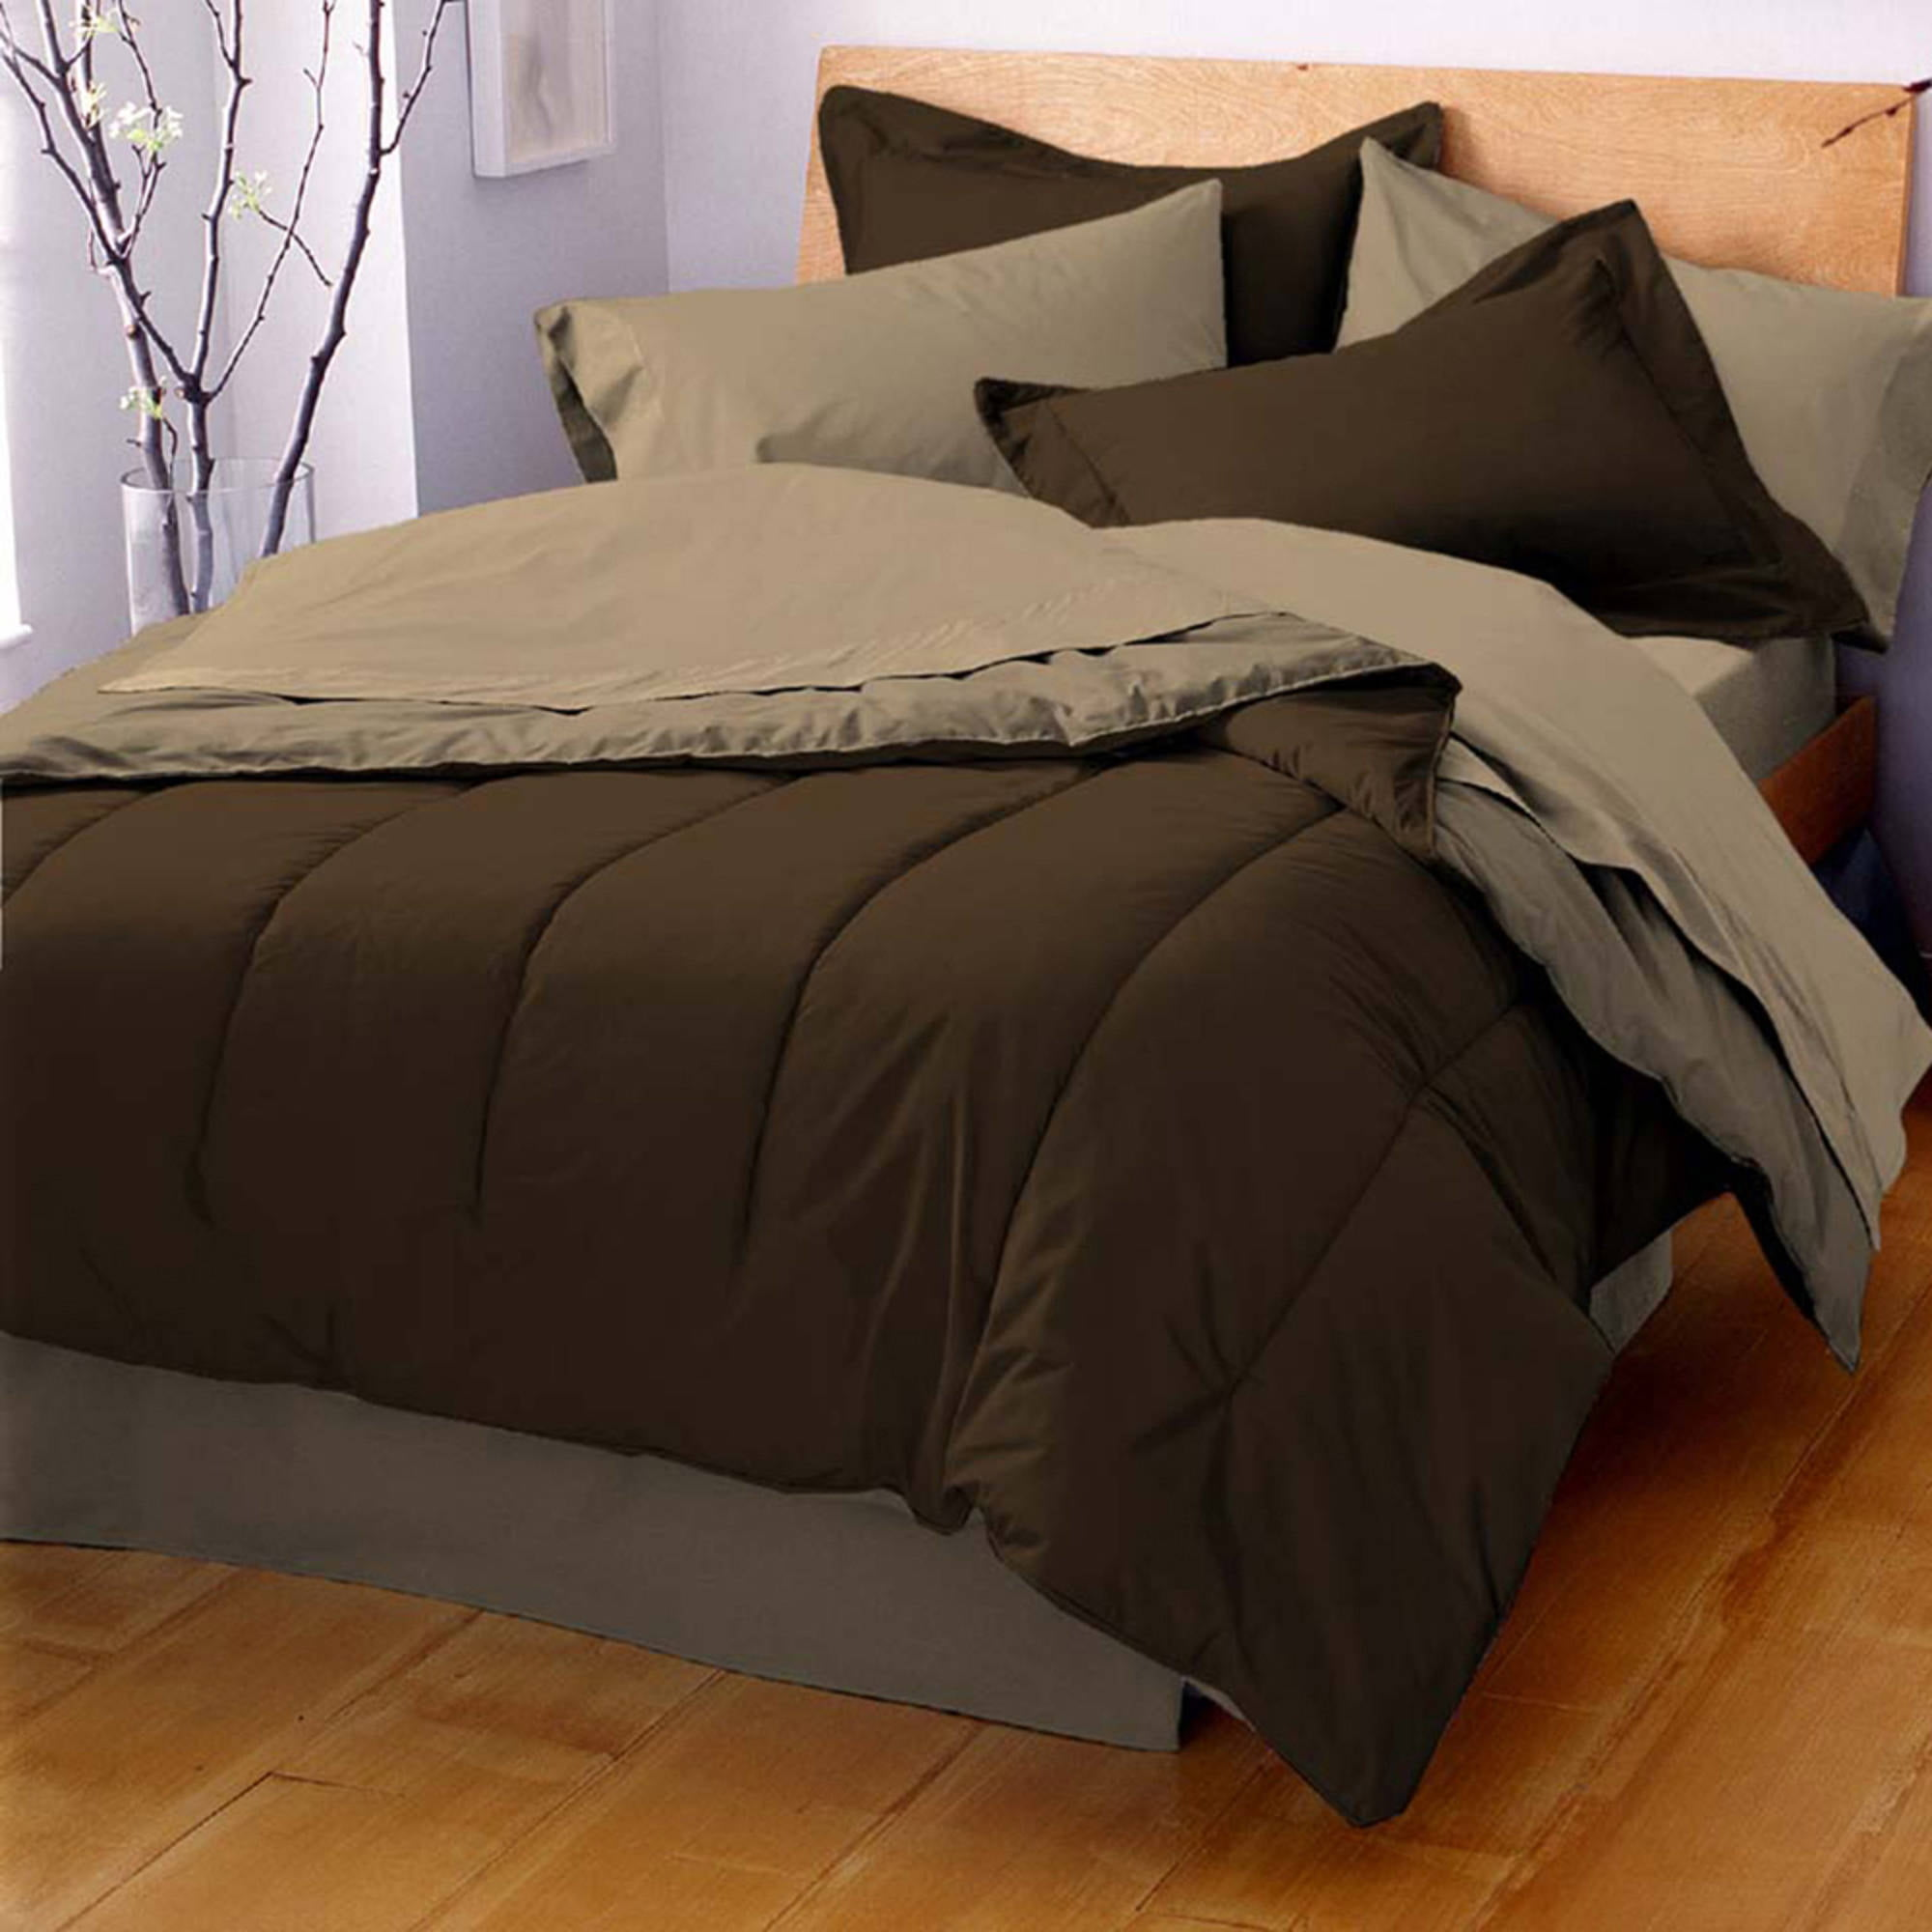 overstock bedskirt bedding bath piece free shipping cotton comforter luna pintuck today included fiesta color product solid set